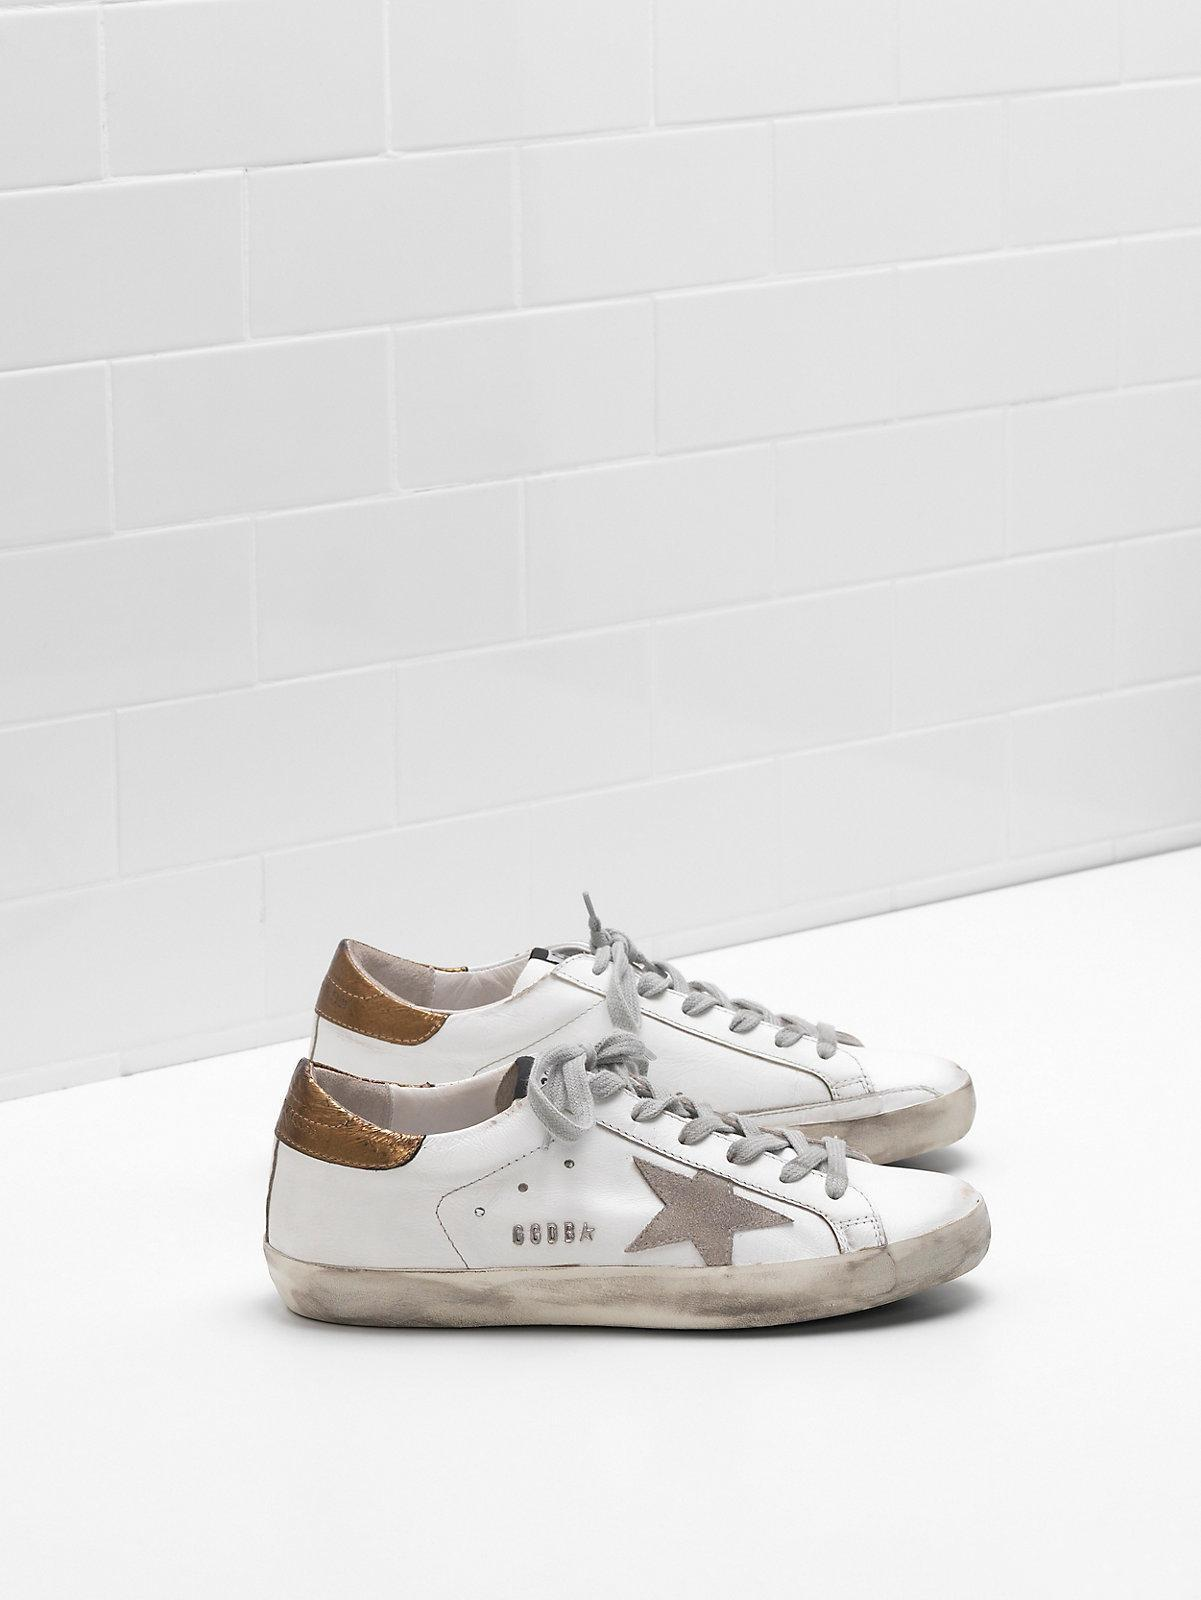 da866af0c212b Size 35 45 New Design Golden Goose Ggdb Old Style Sneakers Genuine Leather  Villous Dermis Casual Shoes Luxury Superstar Trainer Prom Shoes Sperry  Shoes From ...